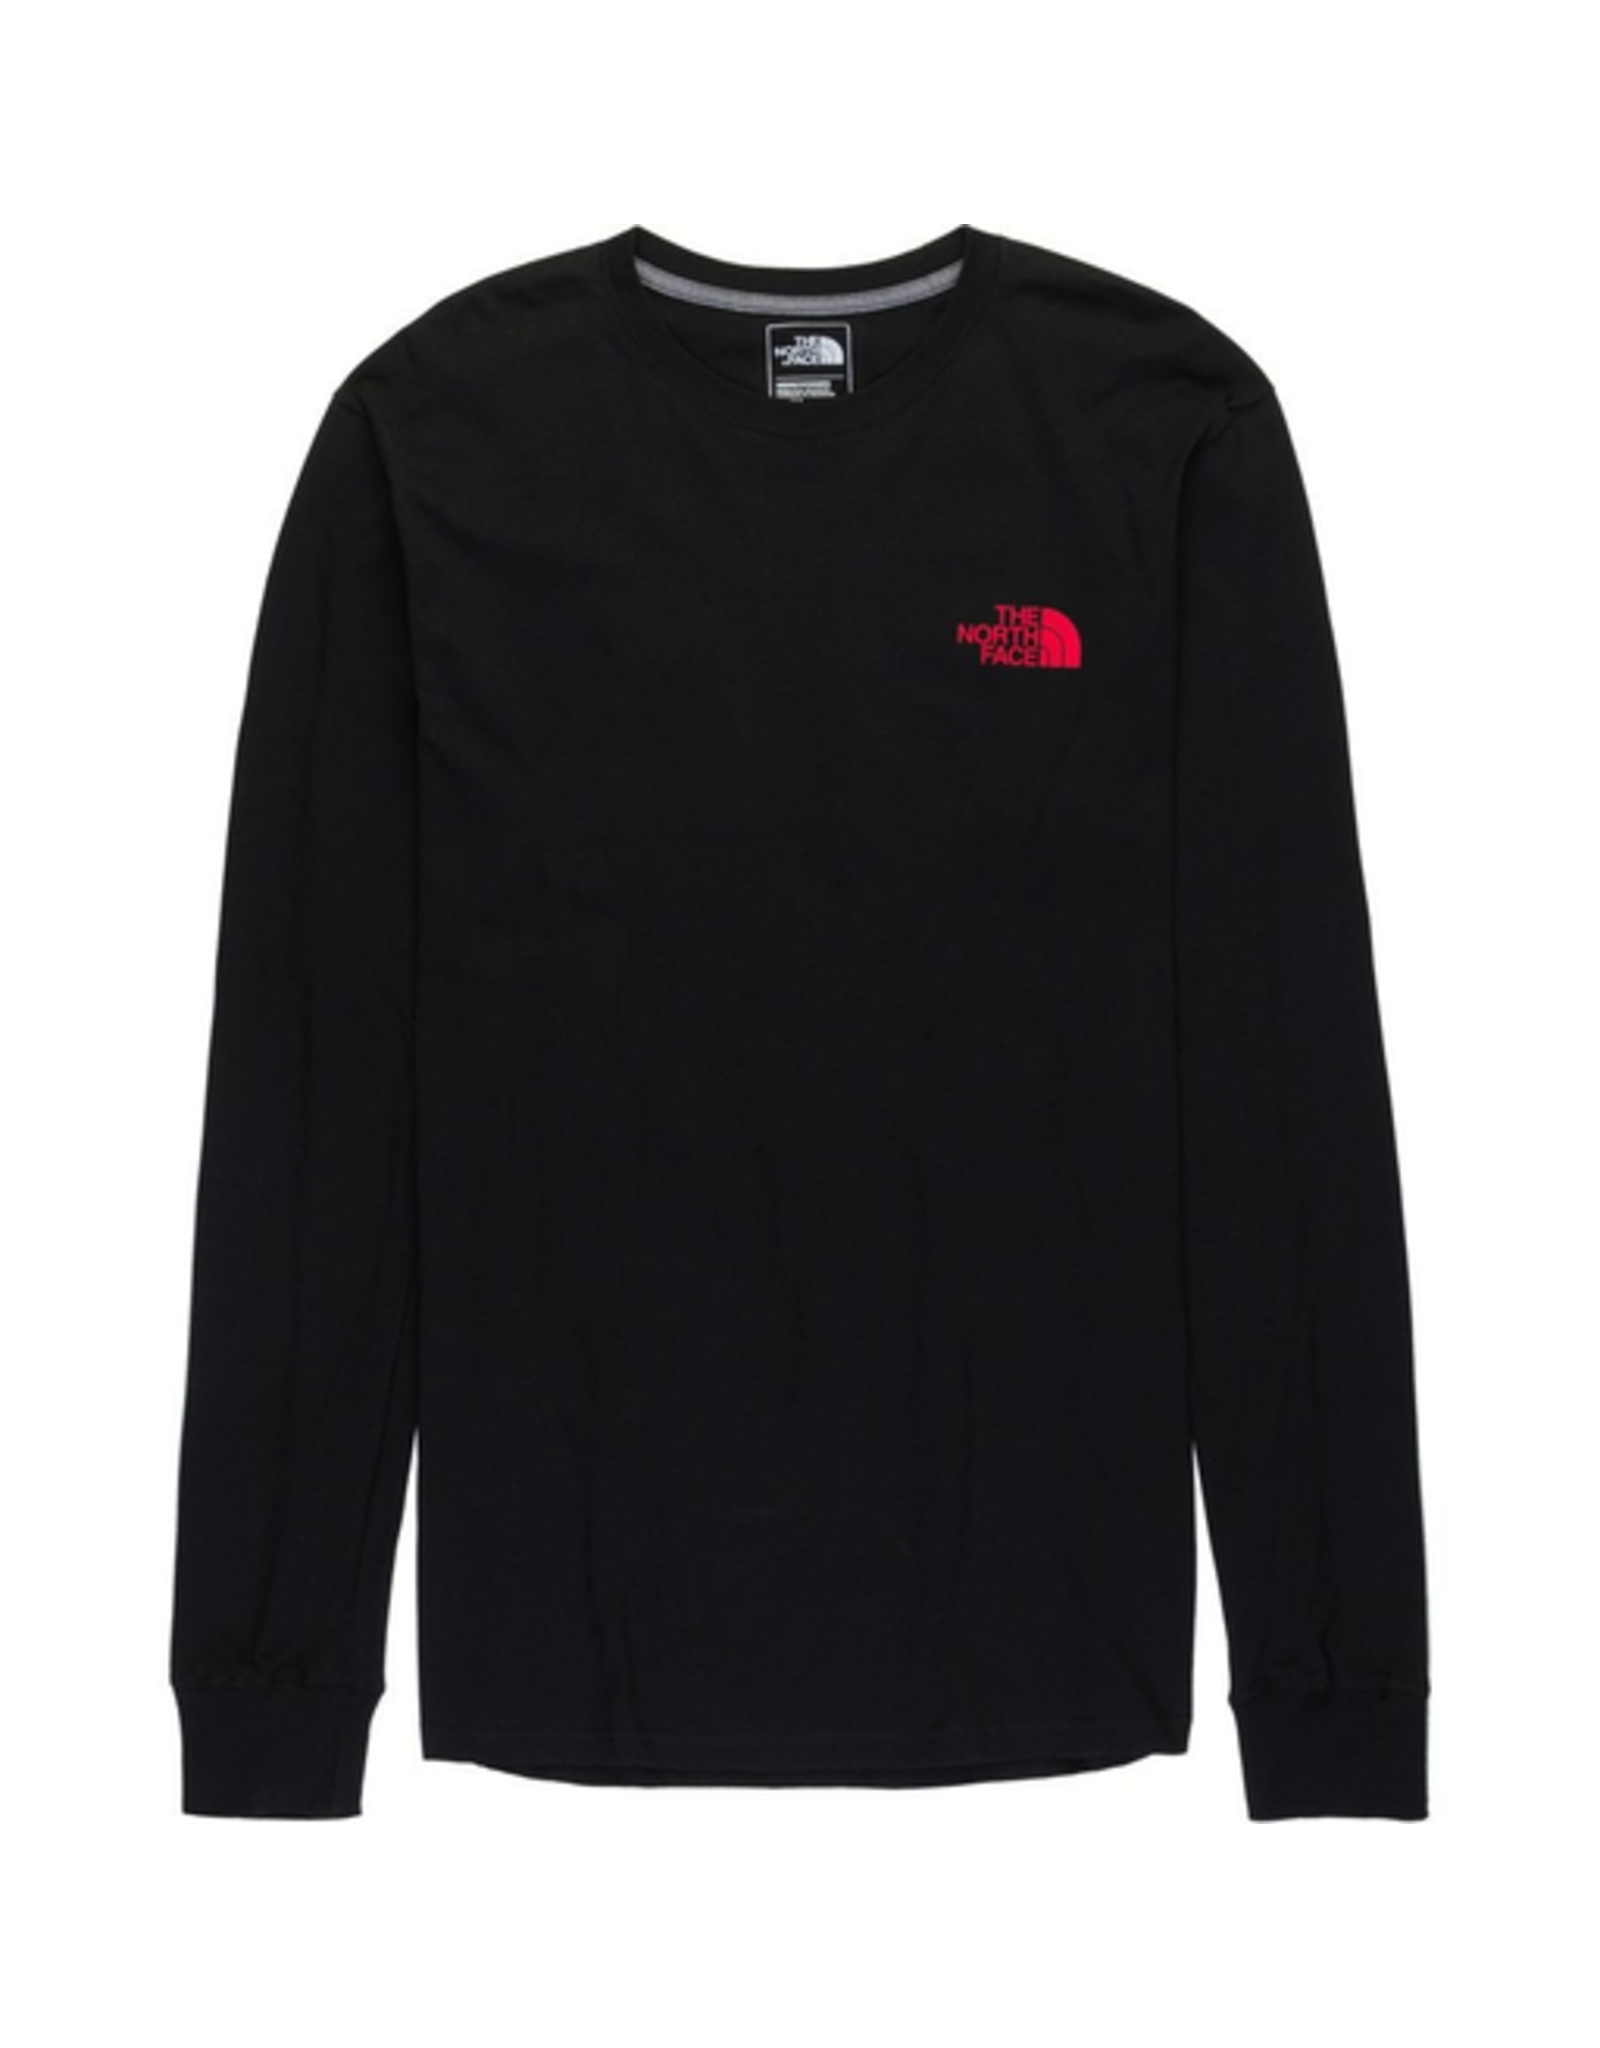 North Face North Face Men's Long Sleeve Red Box Tee